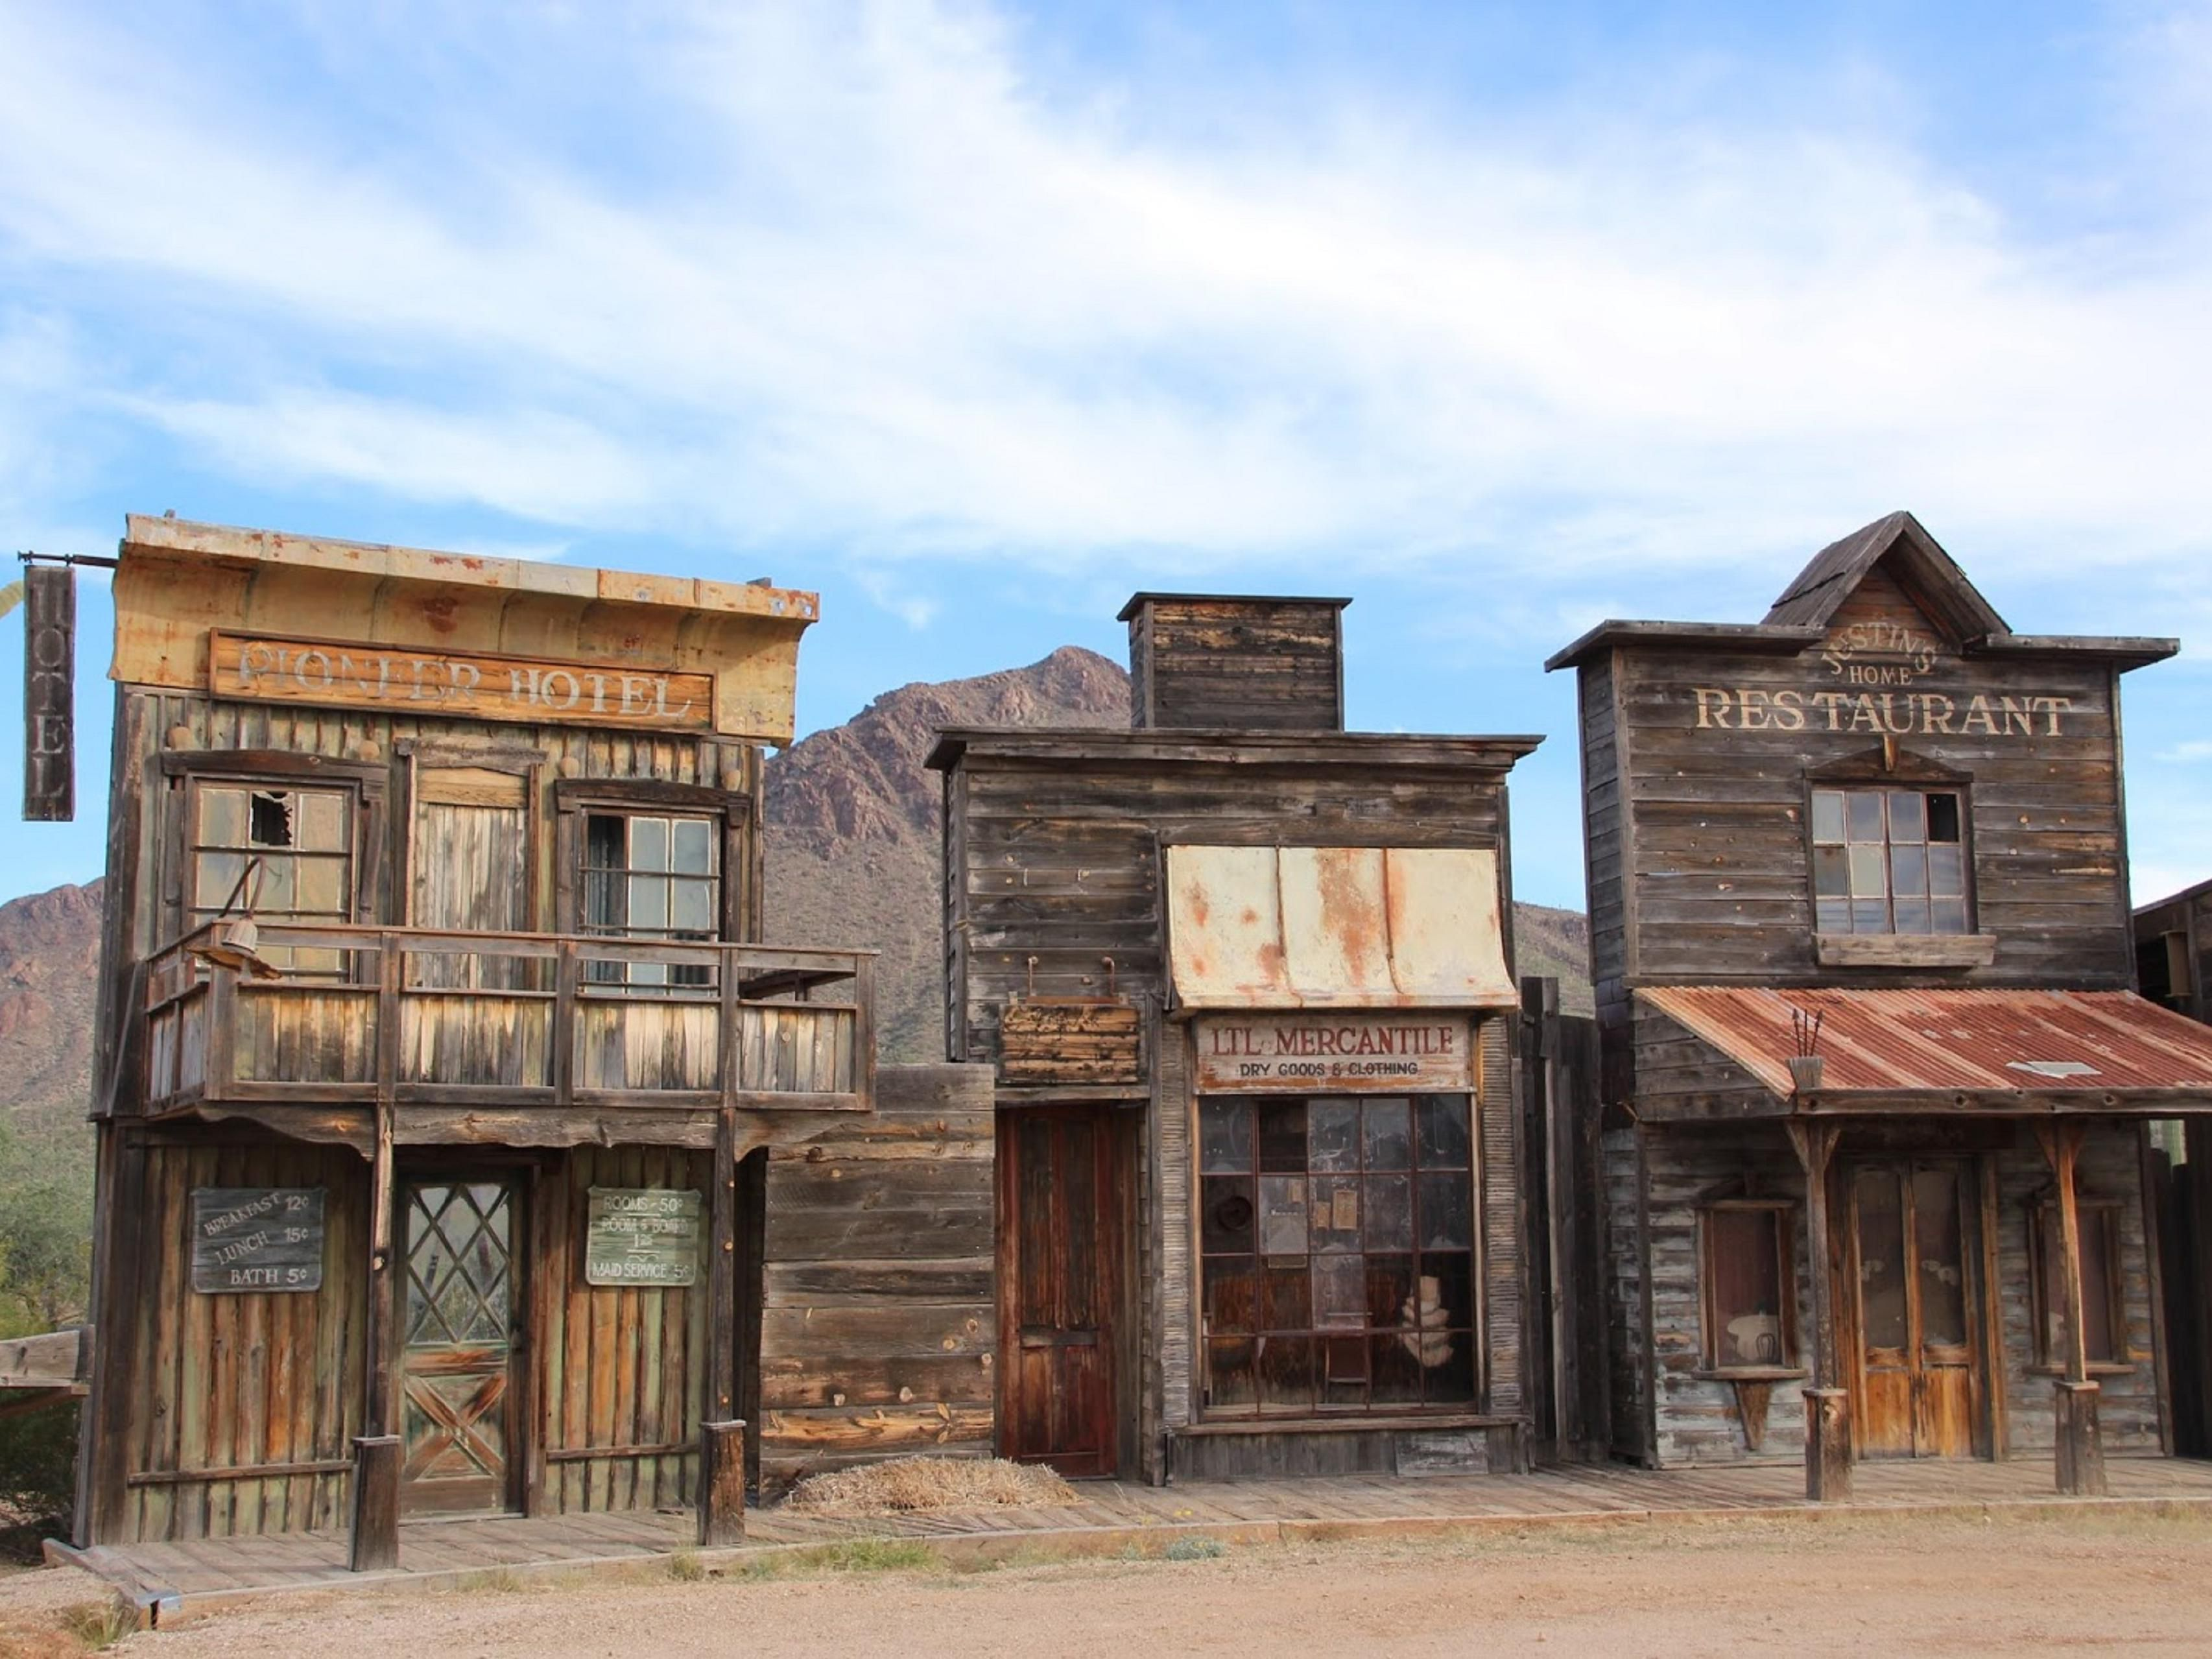 Must see Old Tucson Studios while visiting the area